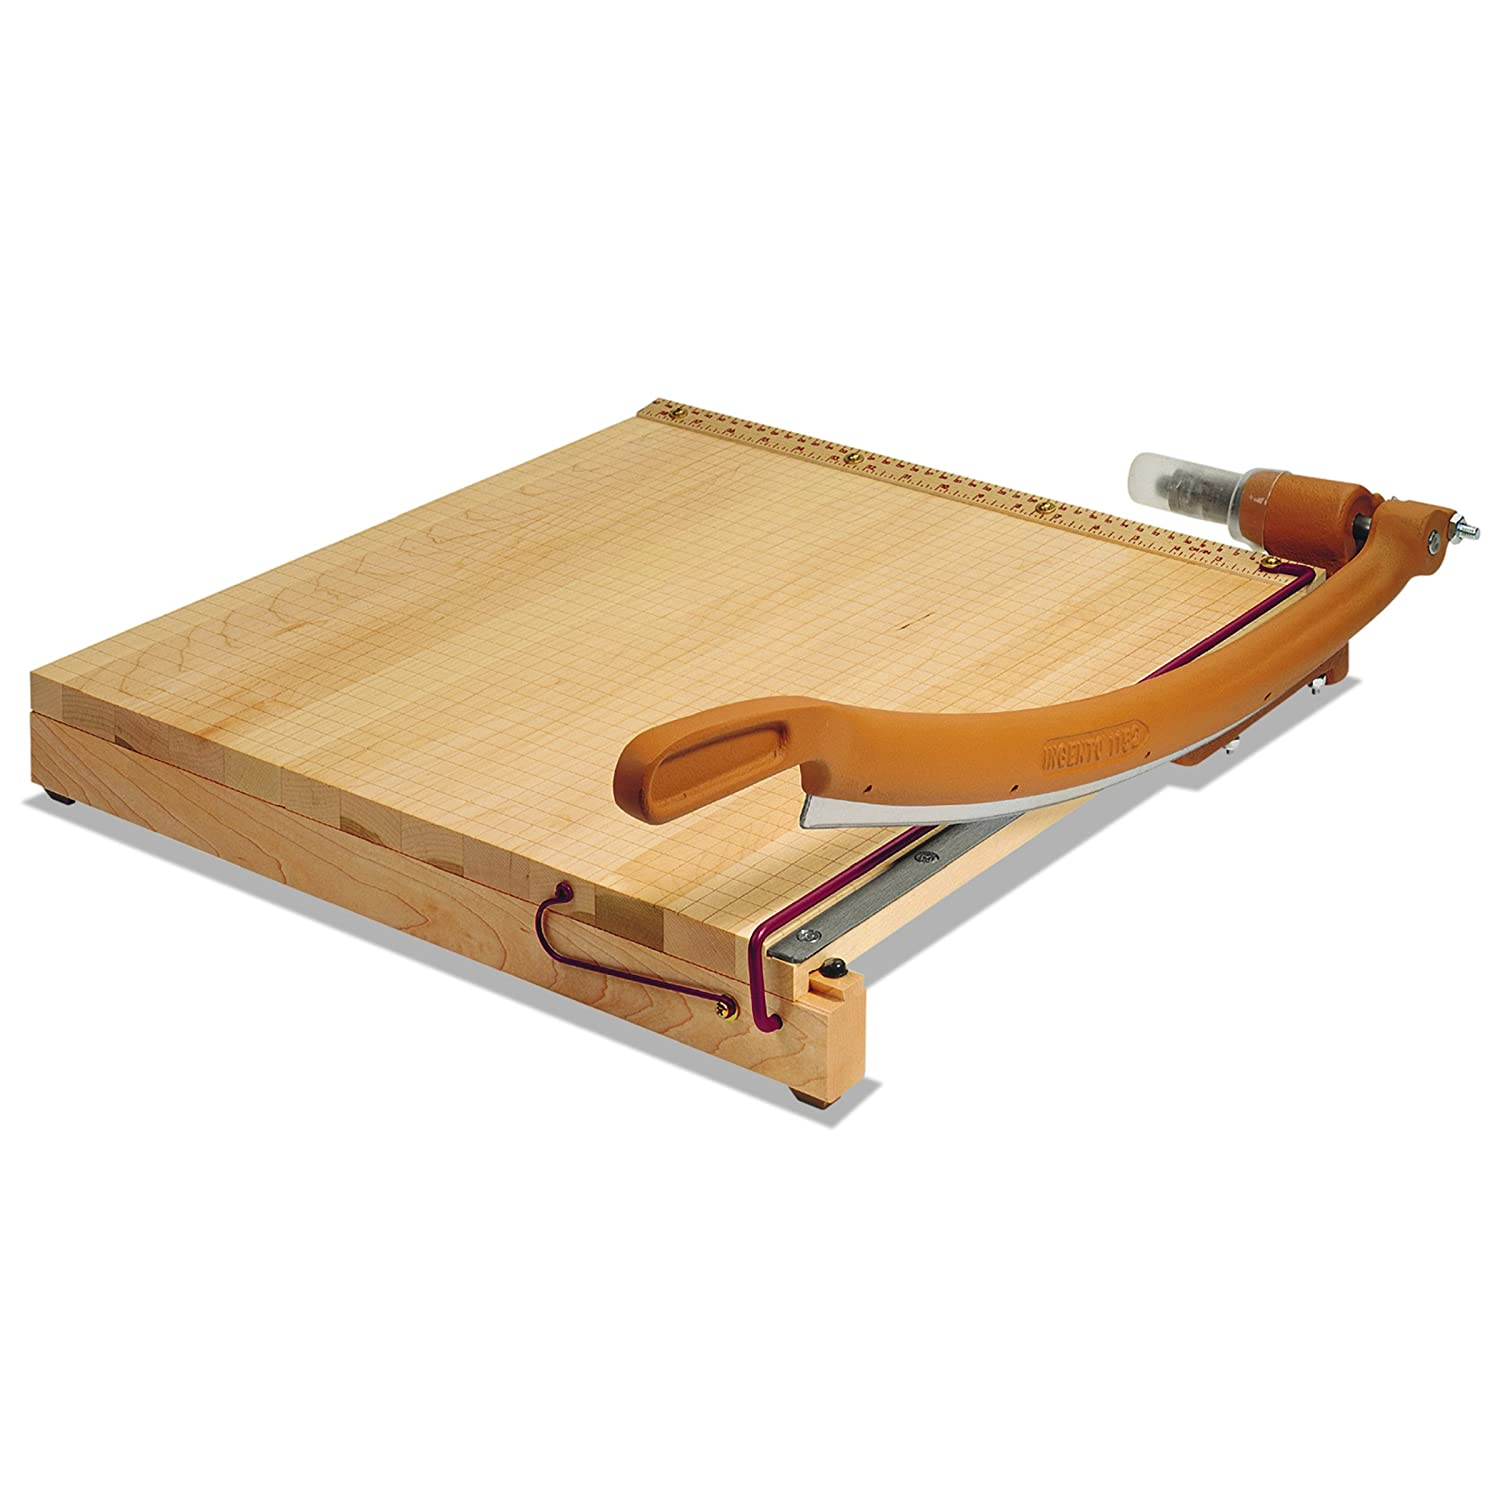 Swingline 1142 ClassicCut Ingento Solid Maple Paper Trimmer, 15 Sheets, Maple Base, 15 x 15 ACCO Brands